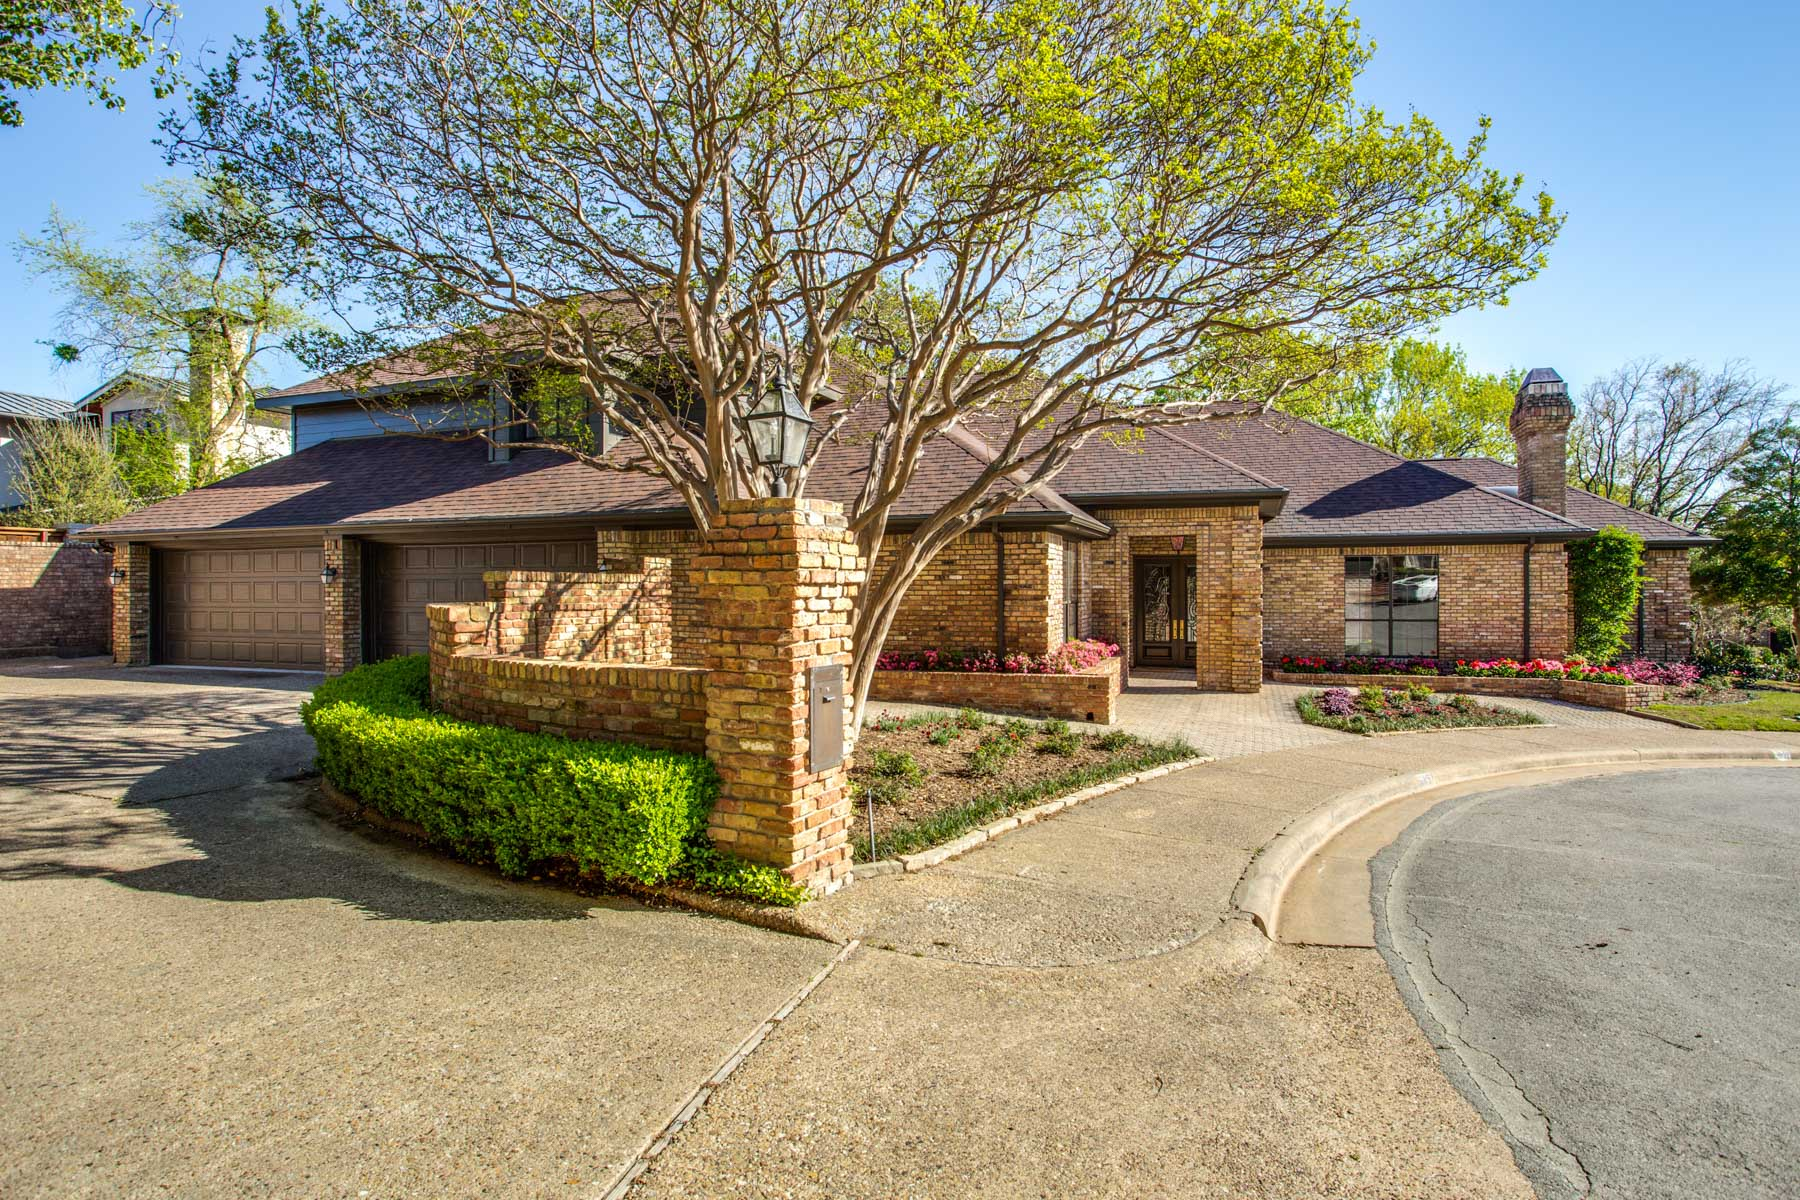 獨棟家庭住宅 為 出售 在 Sleekly Updated with Spacious Flowing Rooms and Stunning Landscape 6657 Crestway Court Dallas, 德克薩斯州, 75230 美國